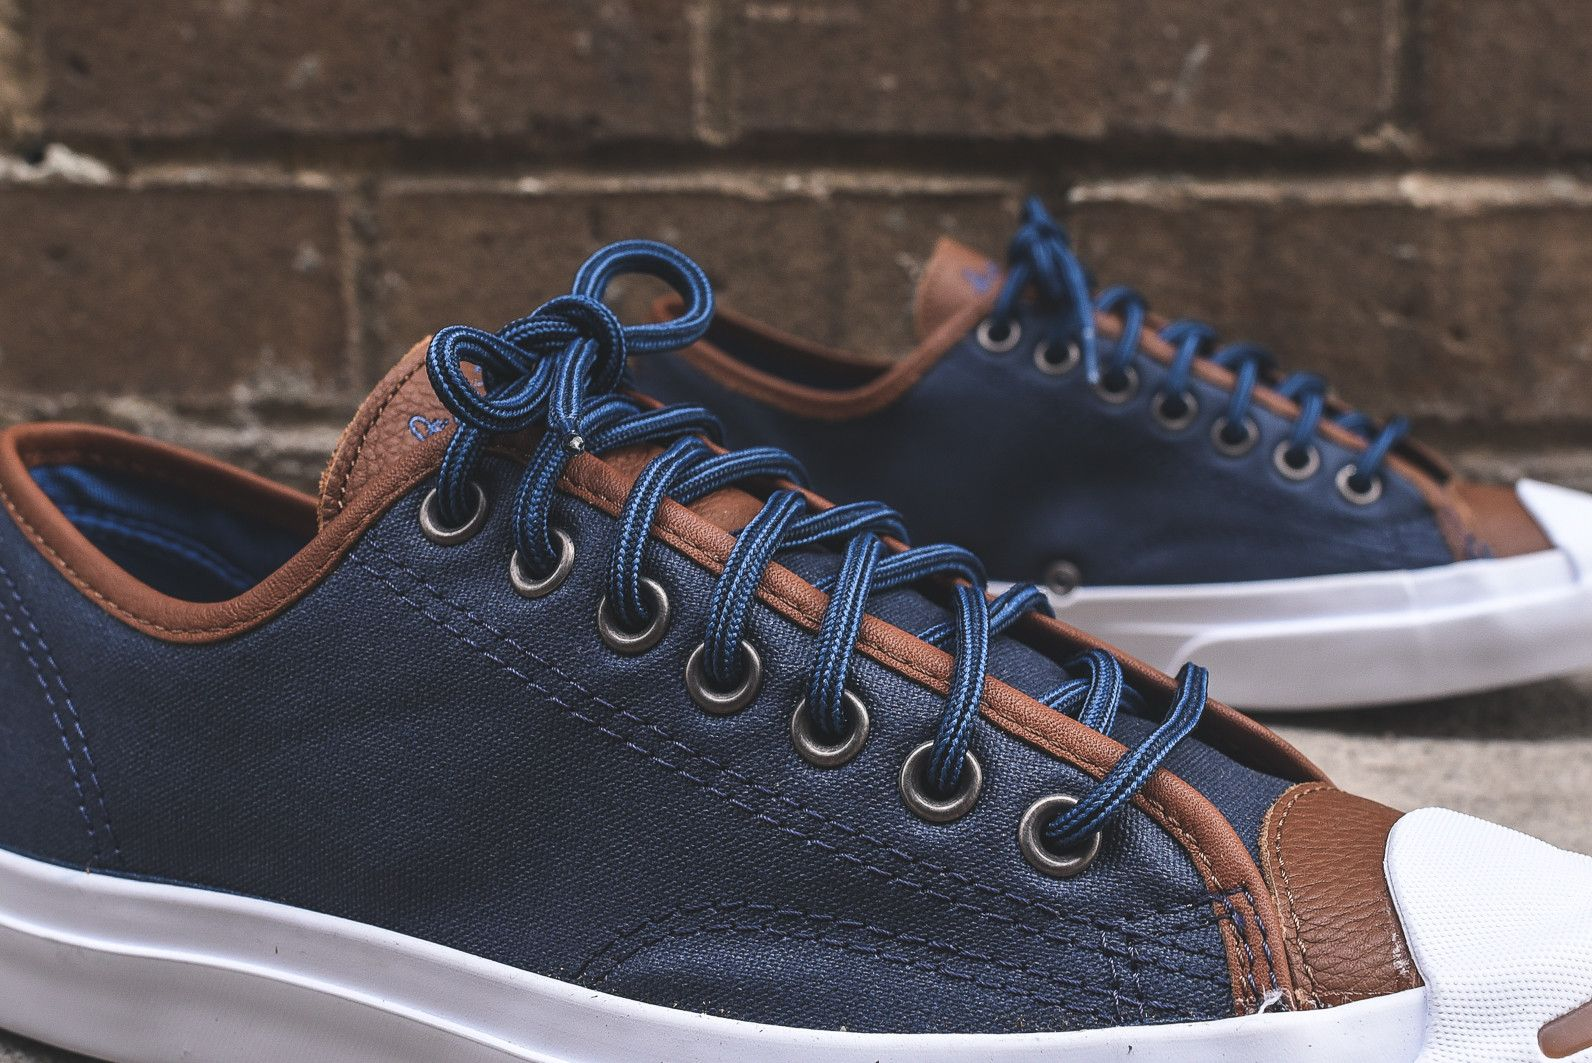 68b67d968095 Converse Jack Purcell - Nighttime Navy   Tobacco